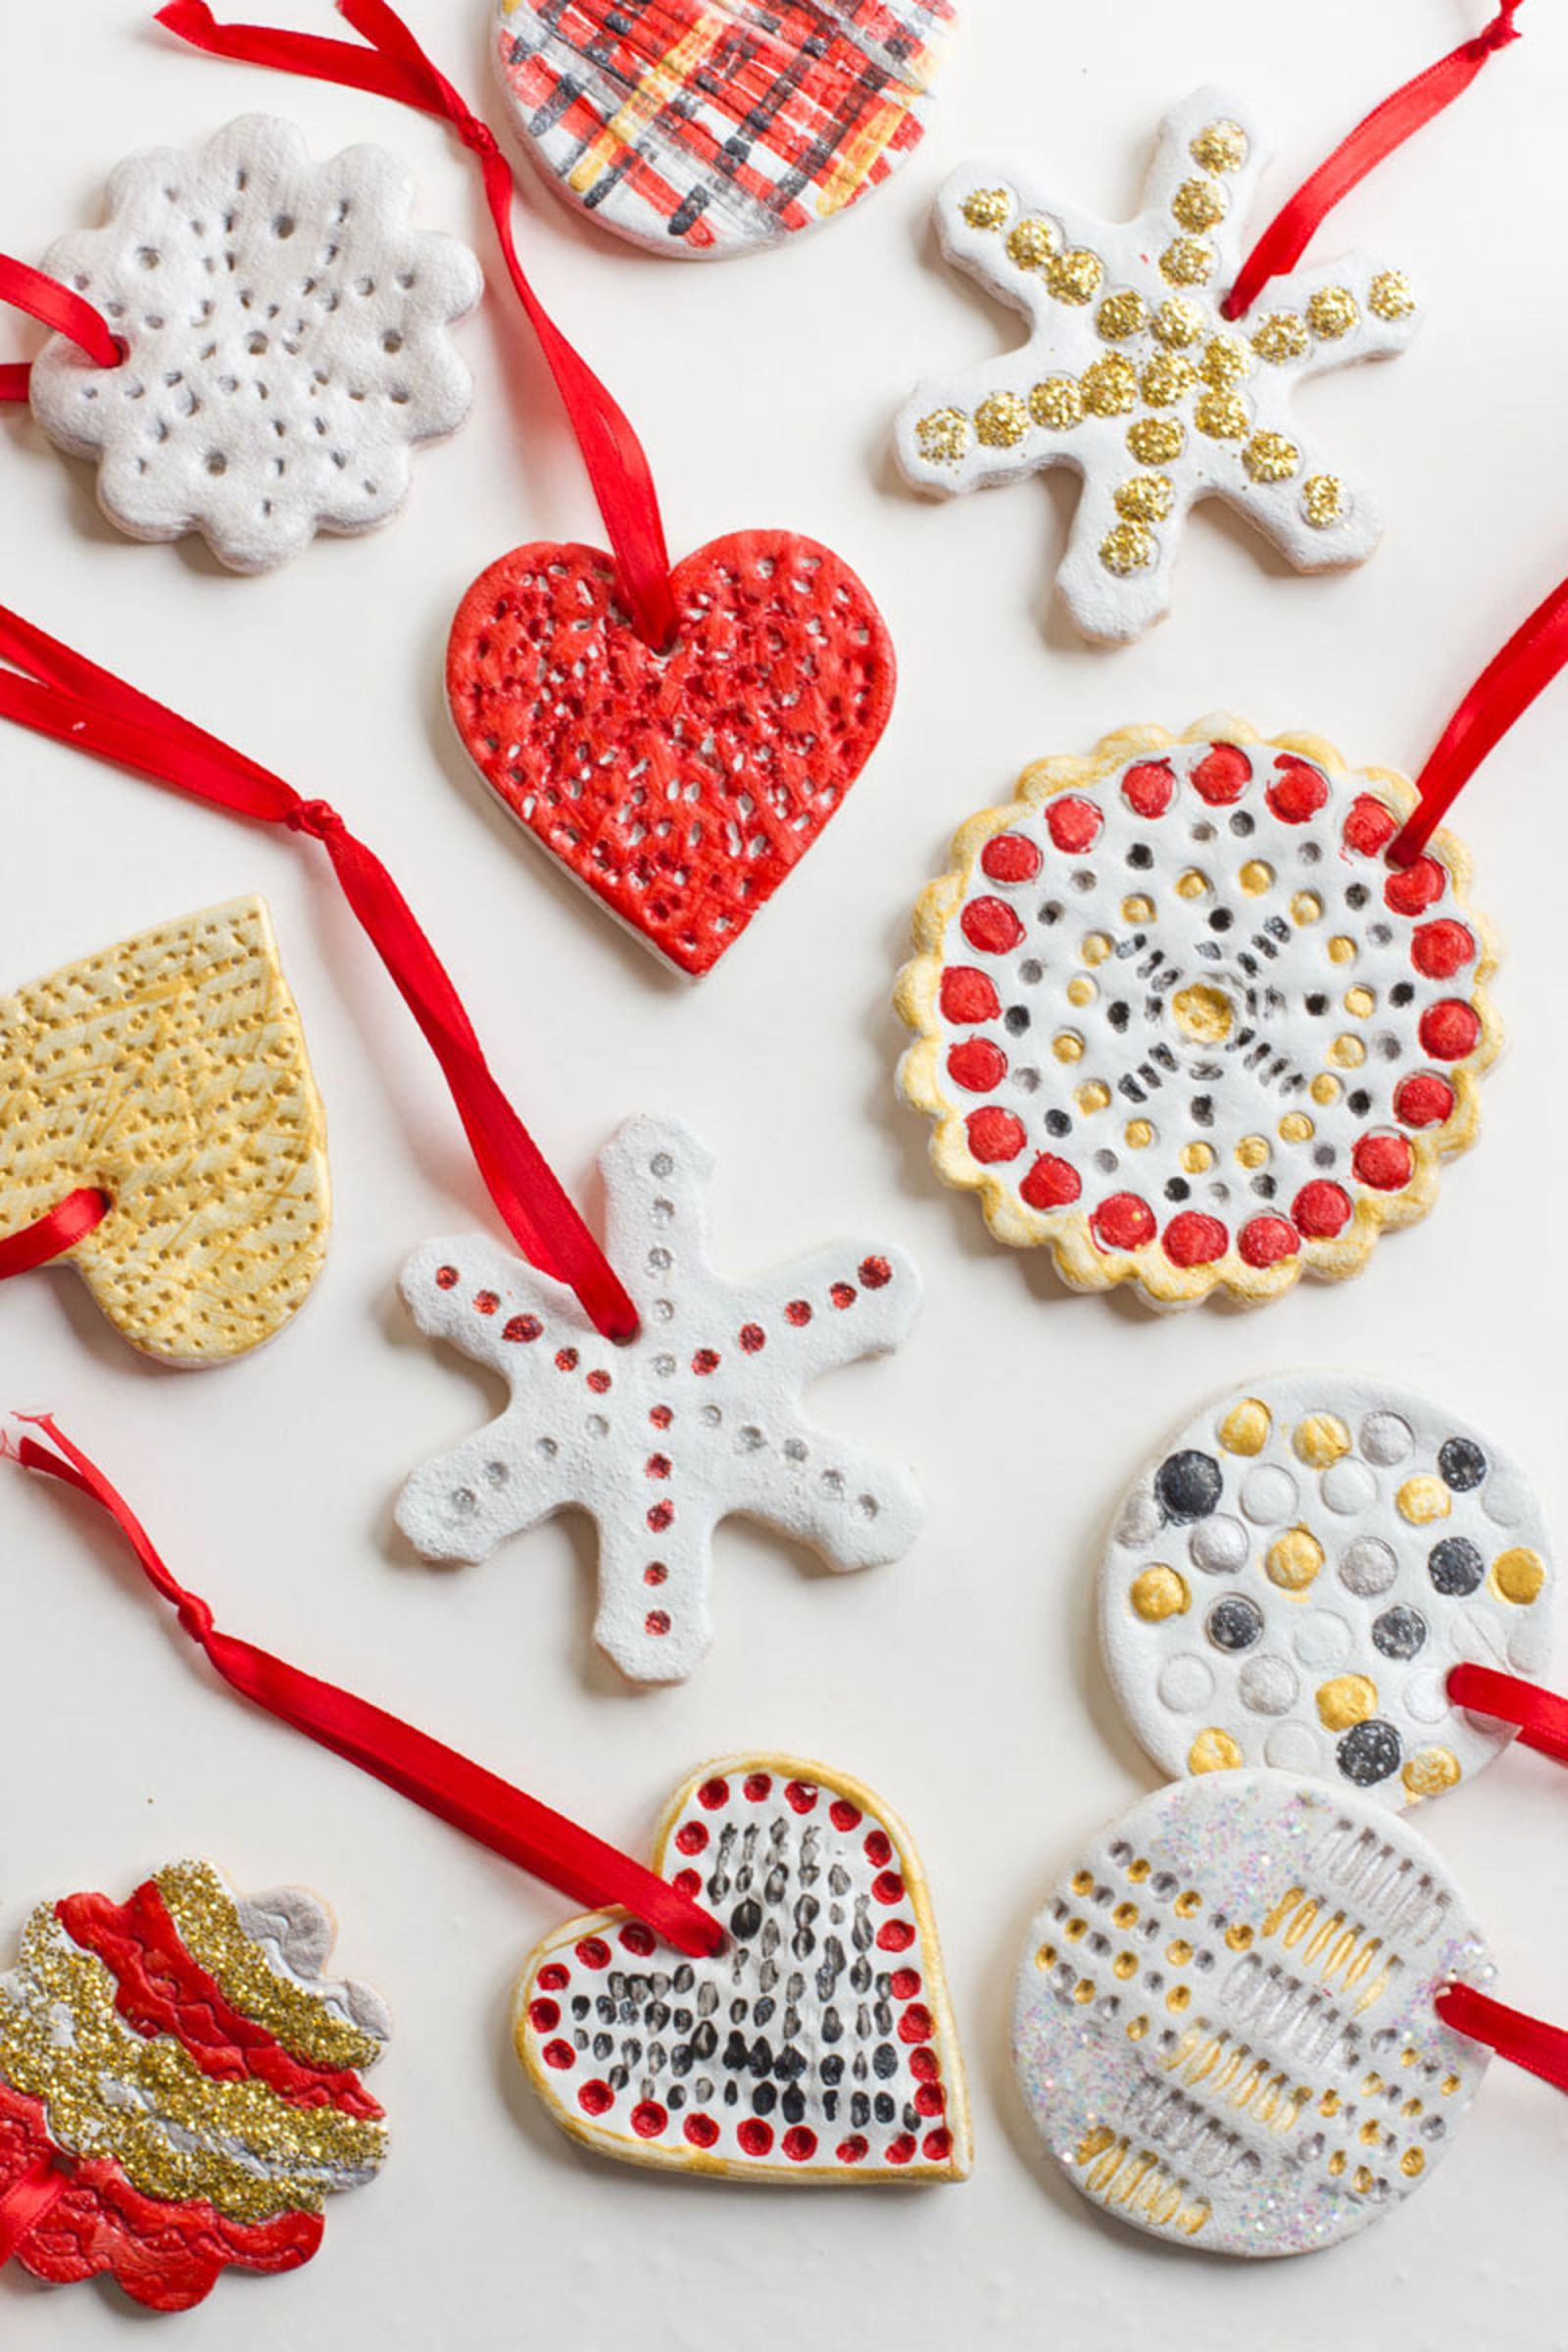 12 Salt Dough Ornament Ideas for Old-Fashioned Christmas Fun | Dough ...